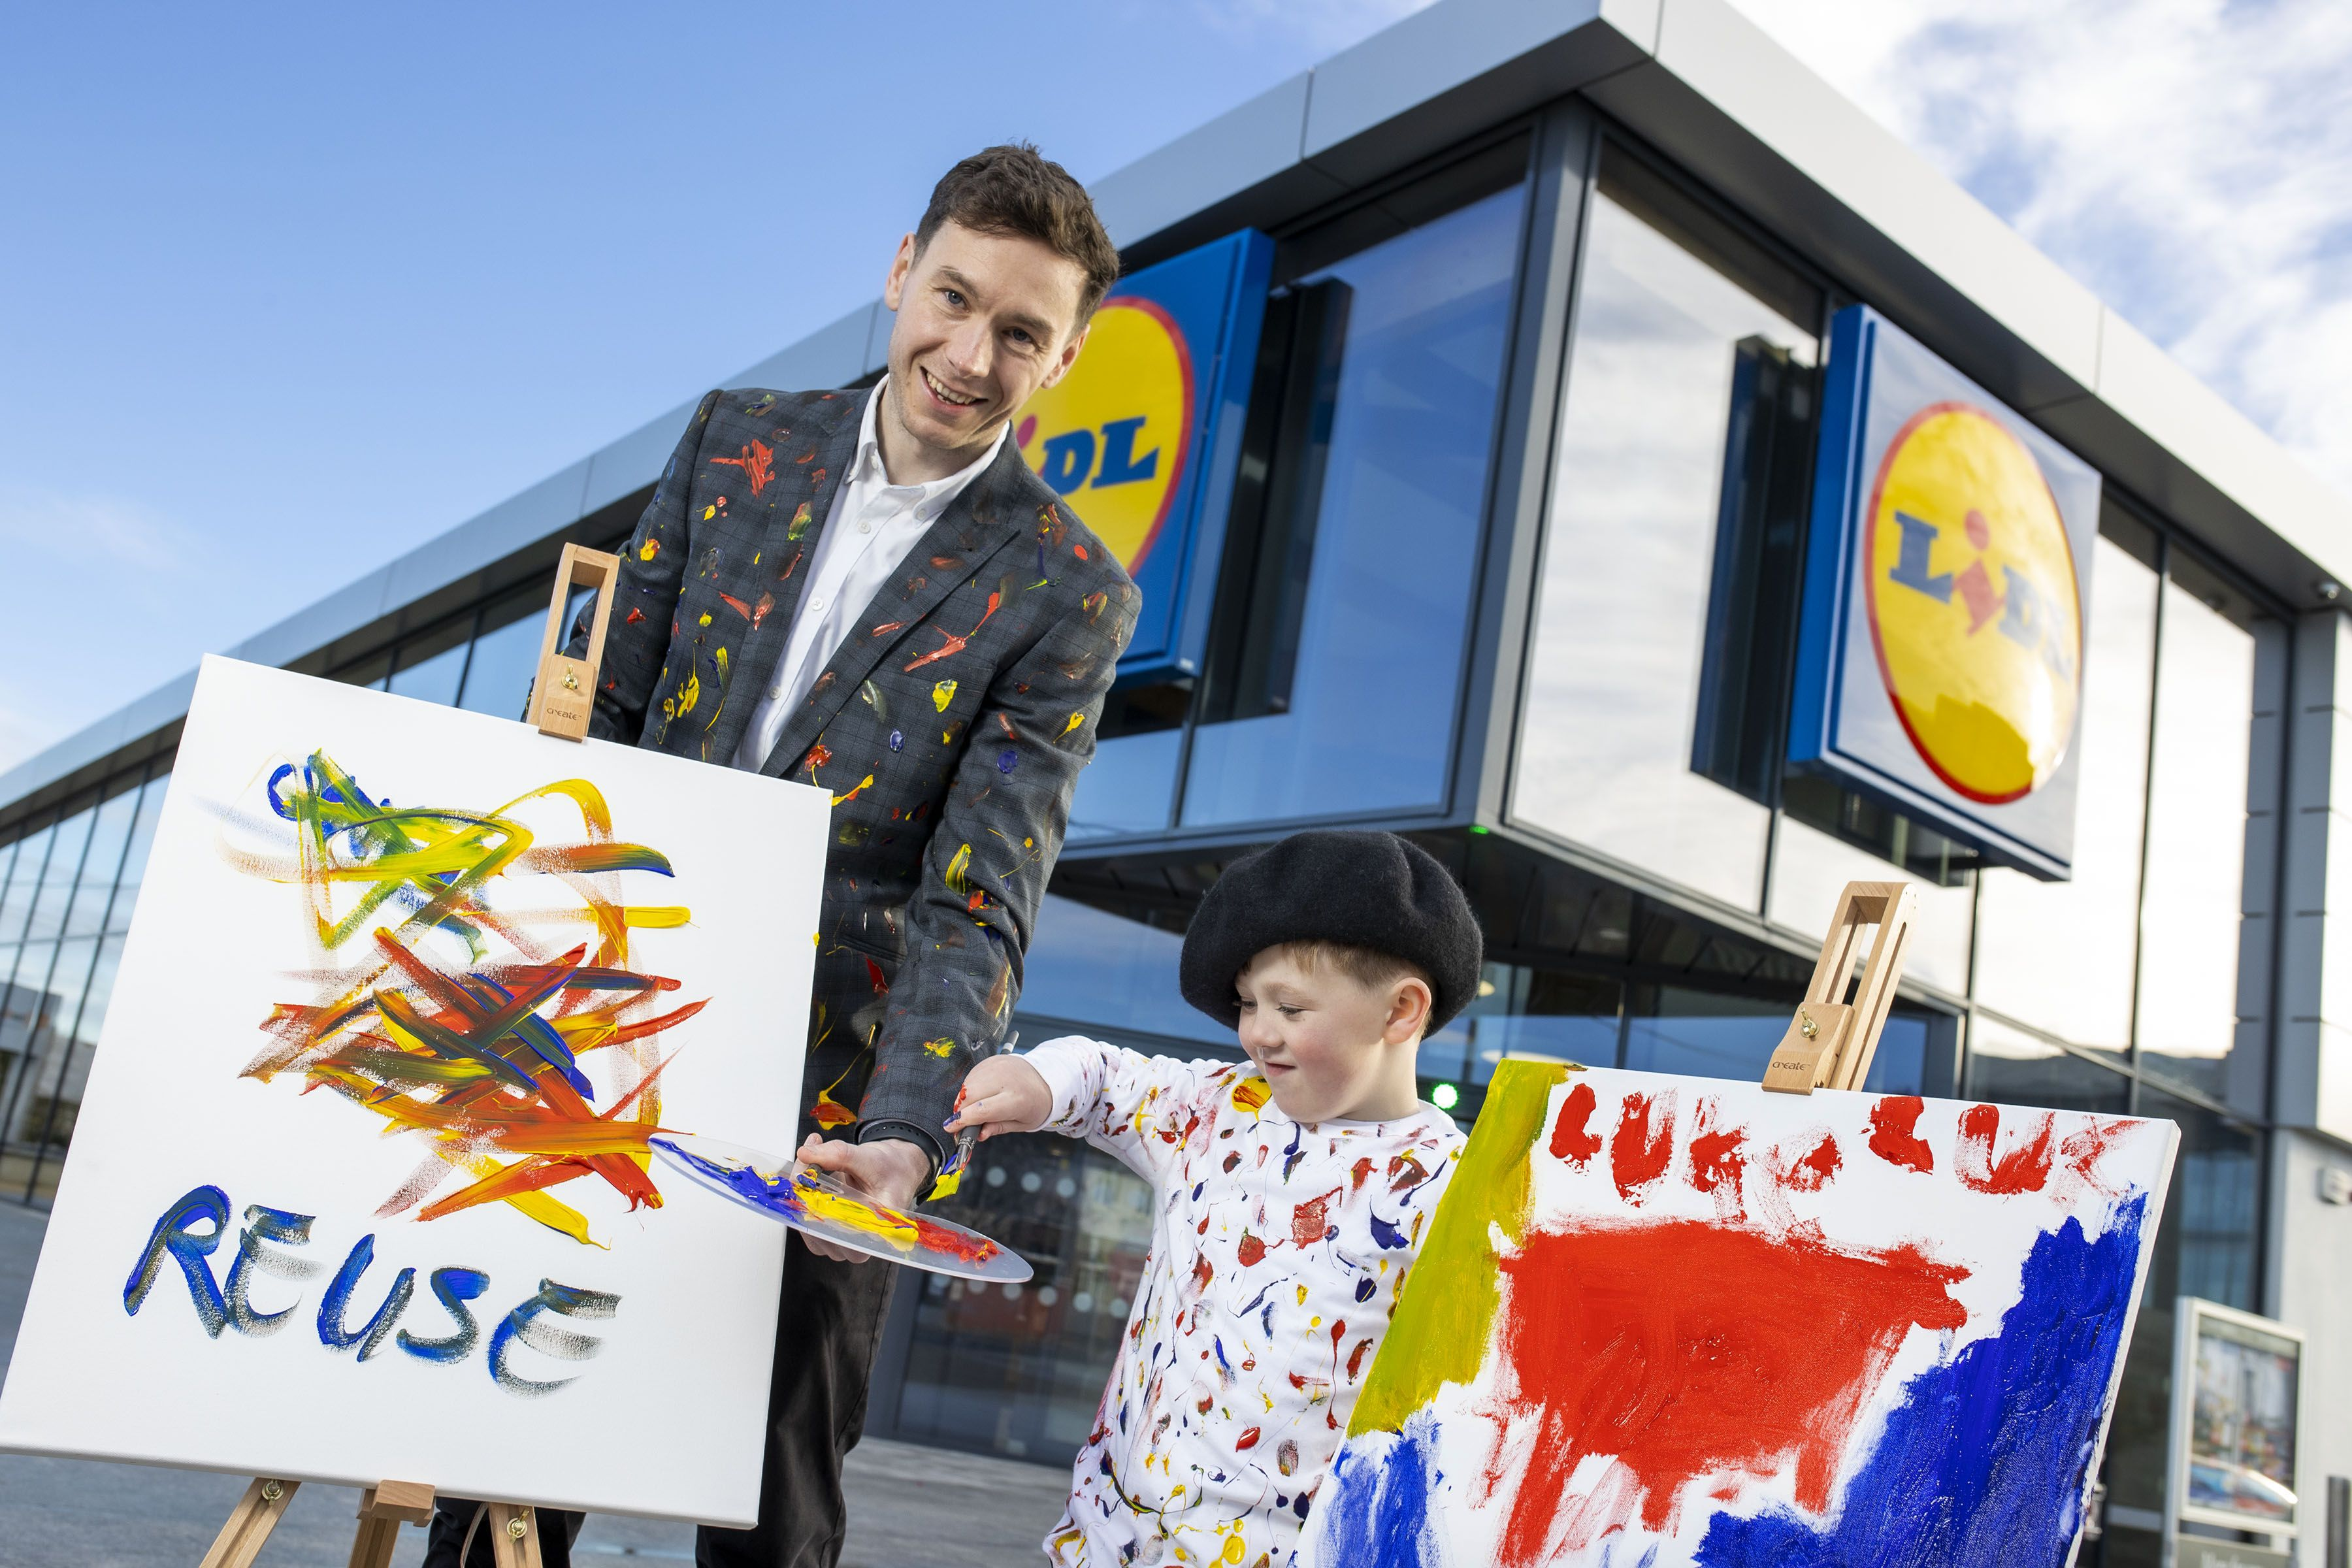 LAUNCH: Luke Lewis, aged 5 and Owen Keogh, Head of CSR at Lidl Ireland